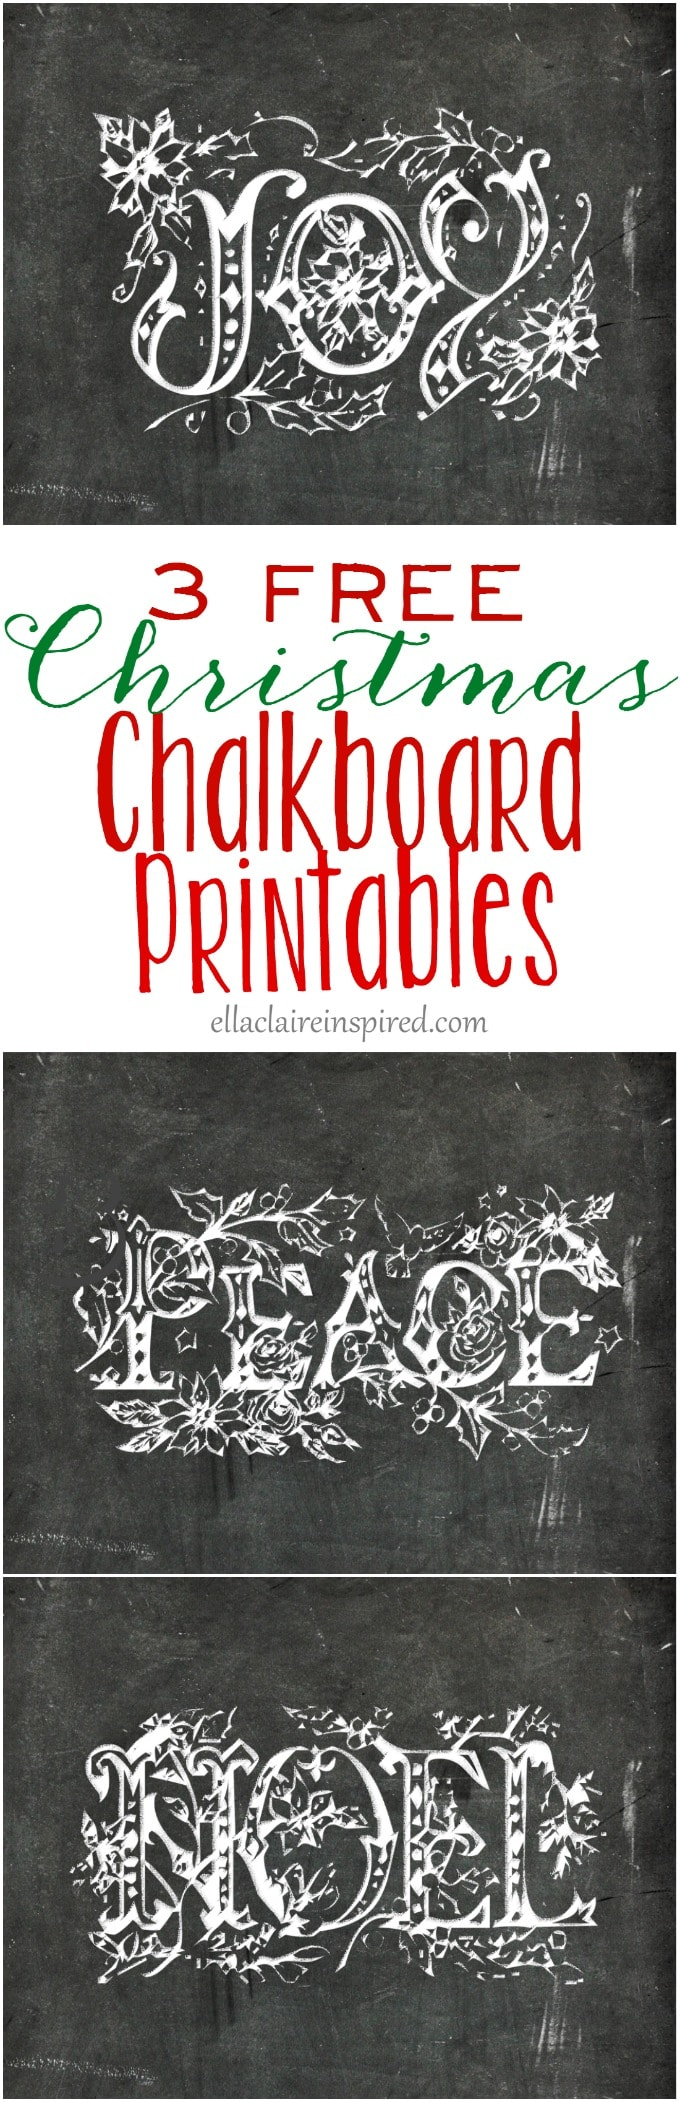 These 3 free chalkboard printables are sure to add vintage charm to your Christmas decor this year! Find the free printable at ellaclaireinspired.com